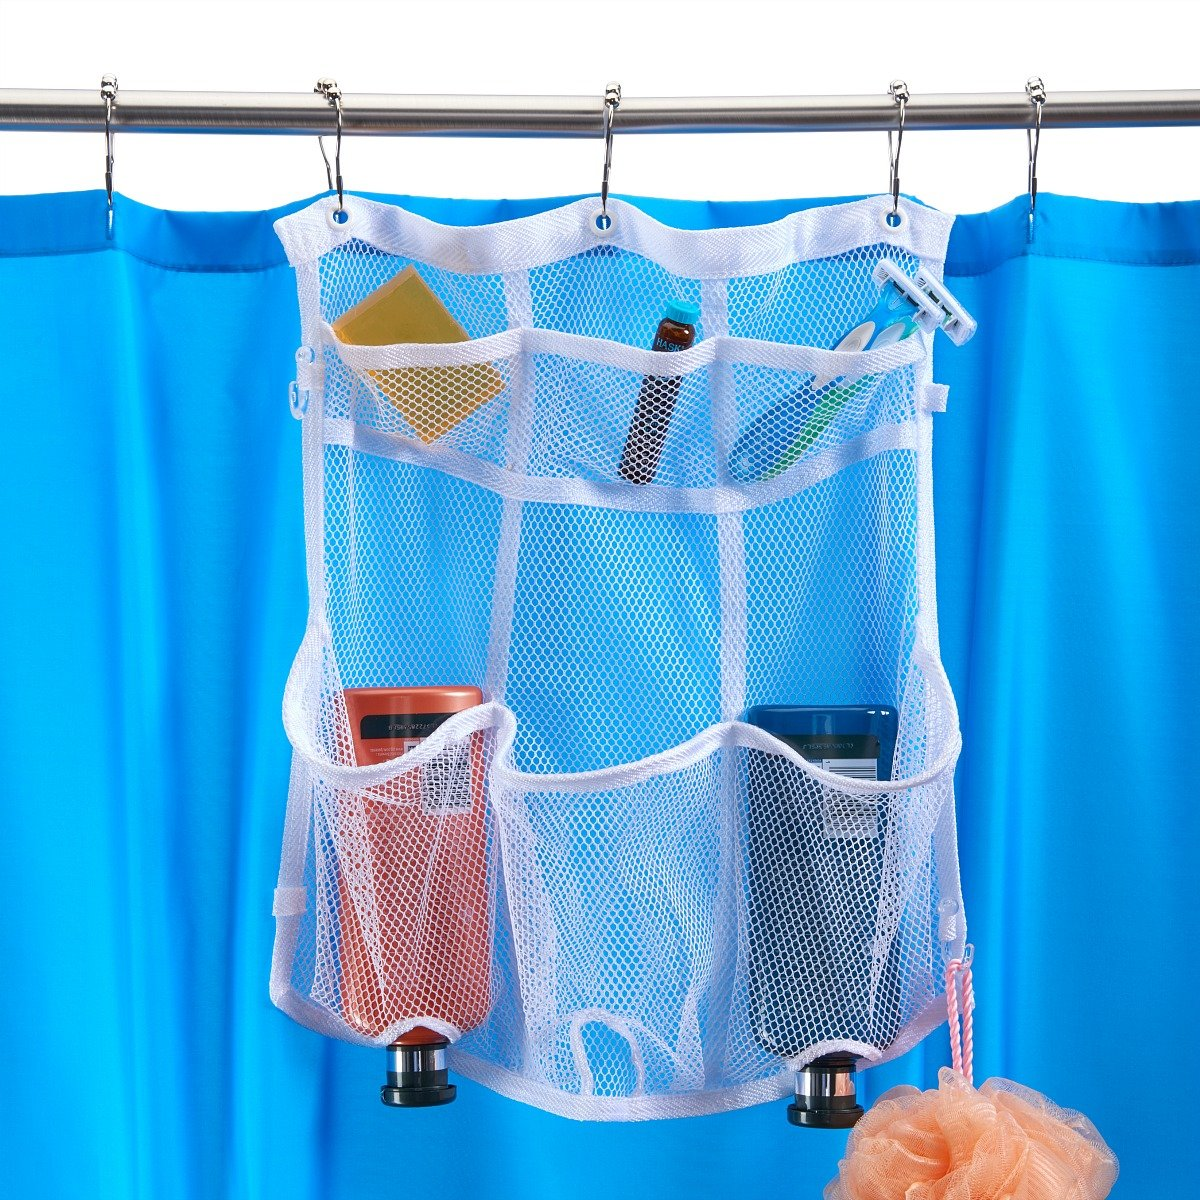 Amazon.com: Smooth Trip Hanging Shower Organizer for Curtain Rods ...